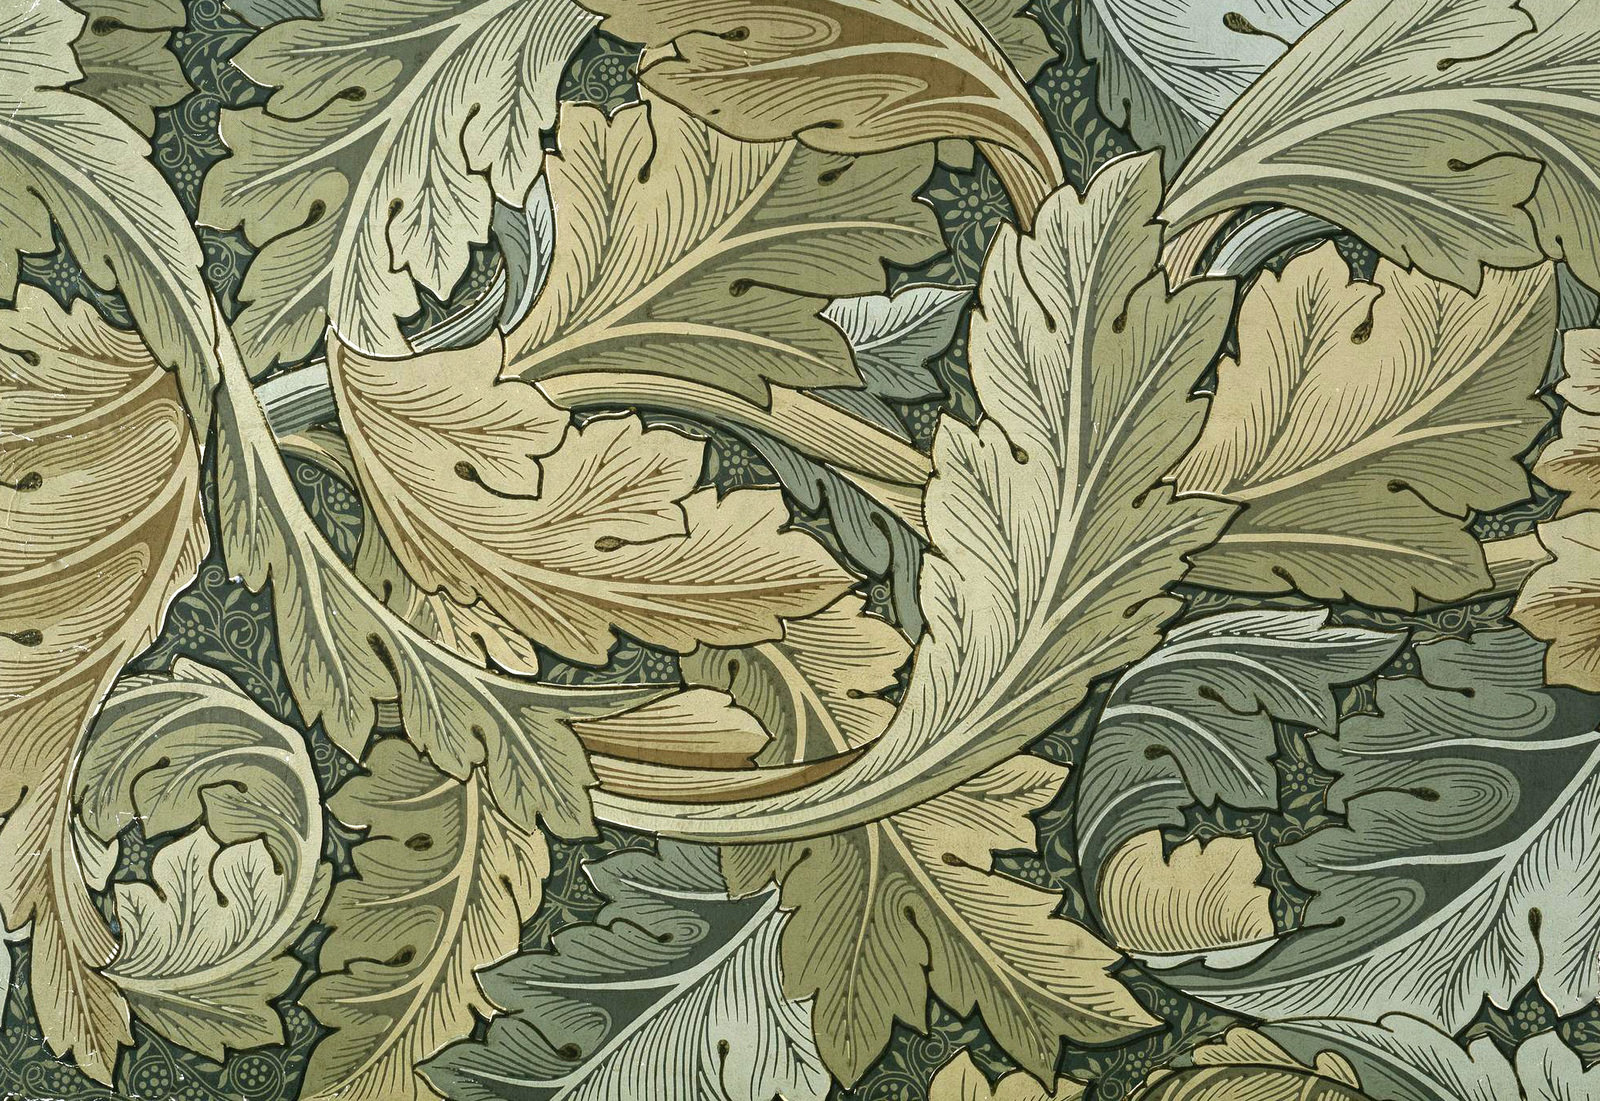 Jugendstil Kunst Origins Of Art Nouveau Exhibitions Europeana Collections